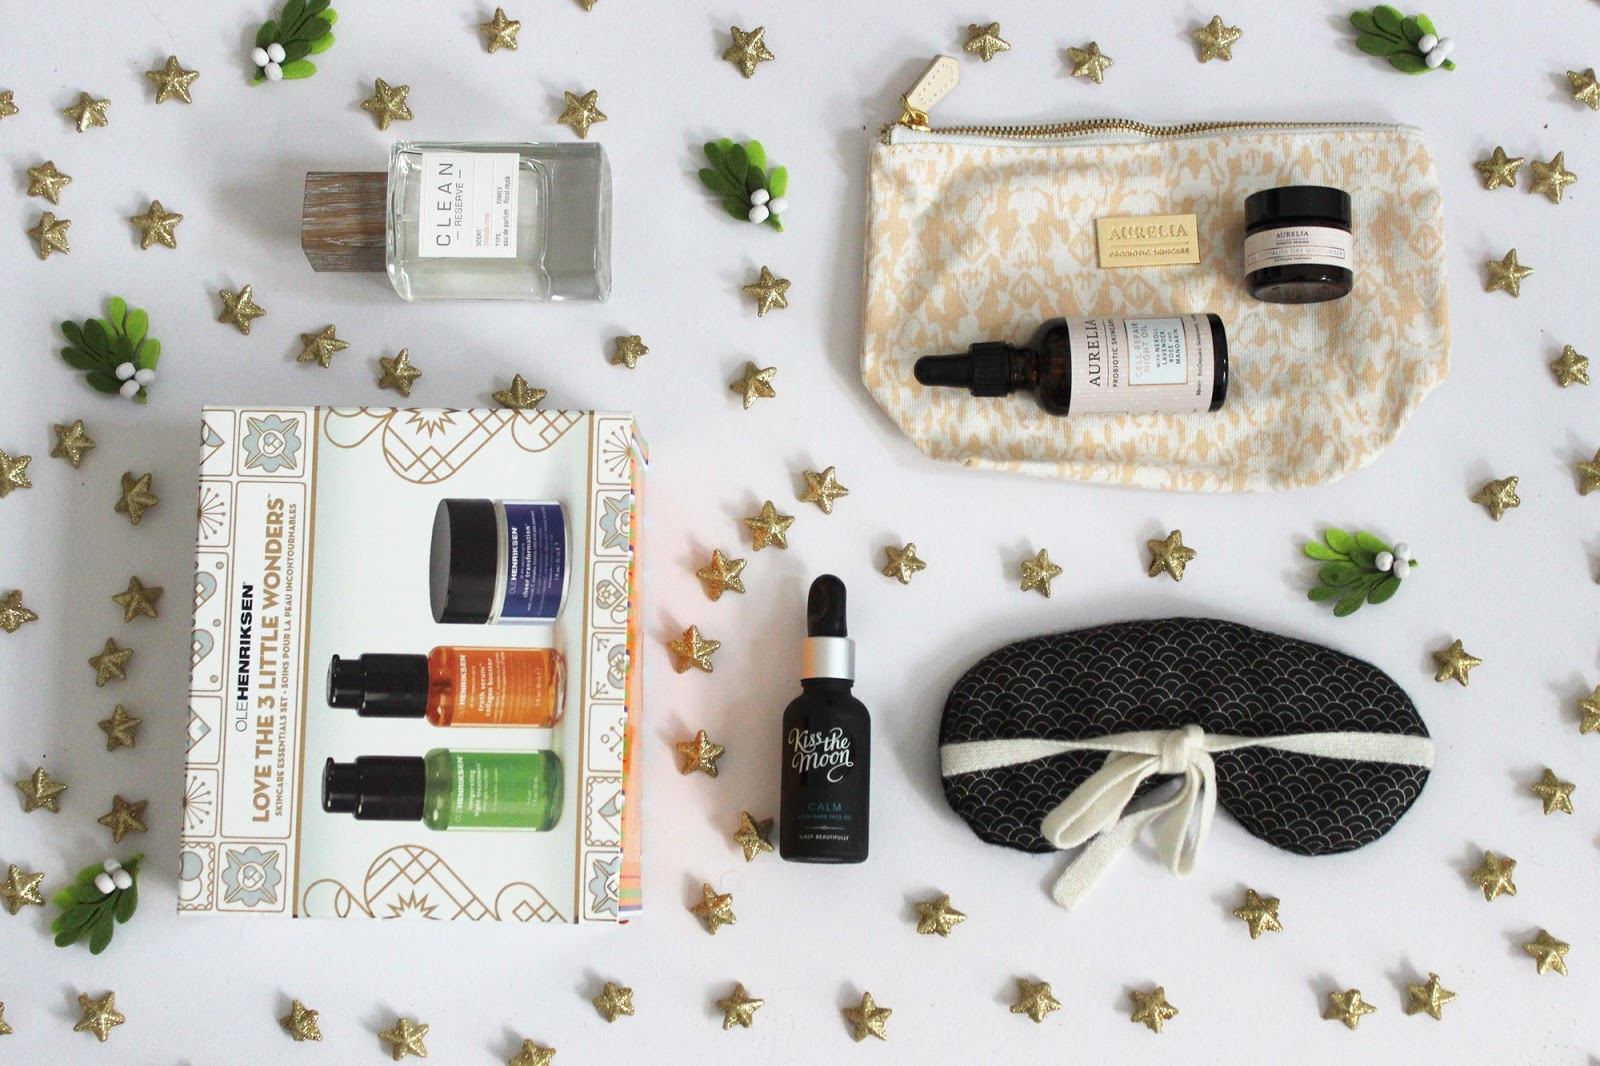 Studs and Dreams: Christmas Gift Guide For Her: High end luxury beauty